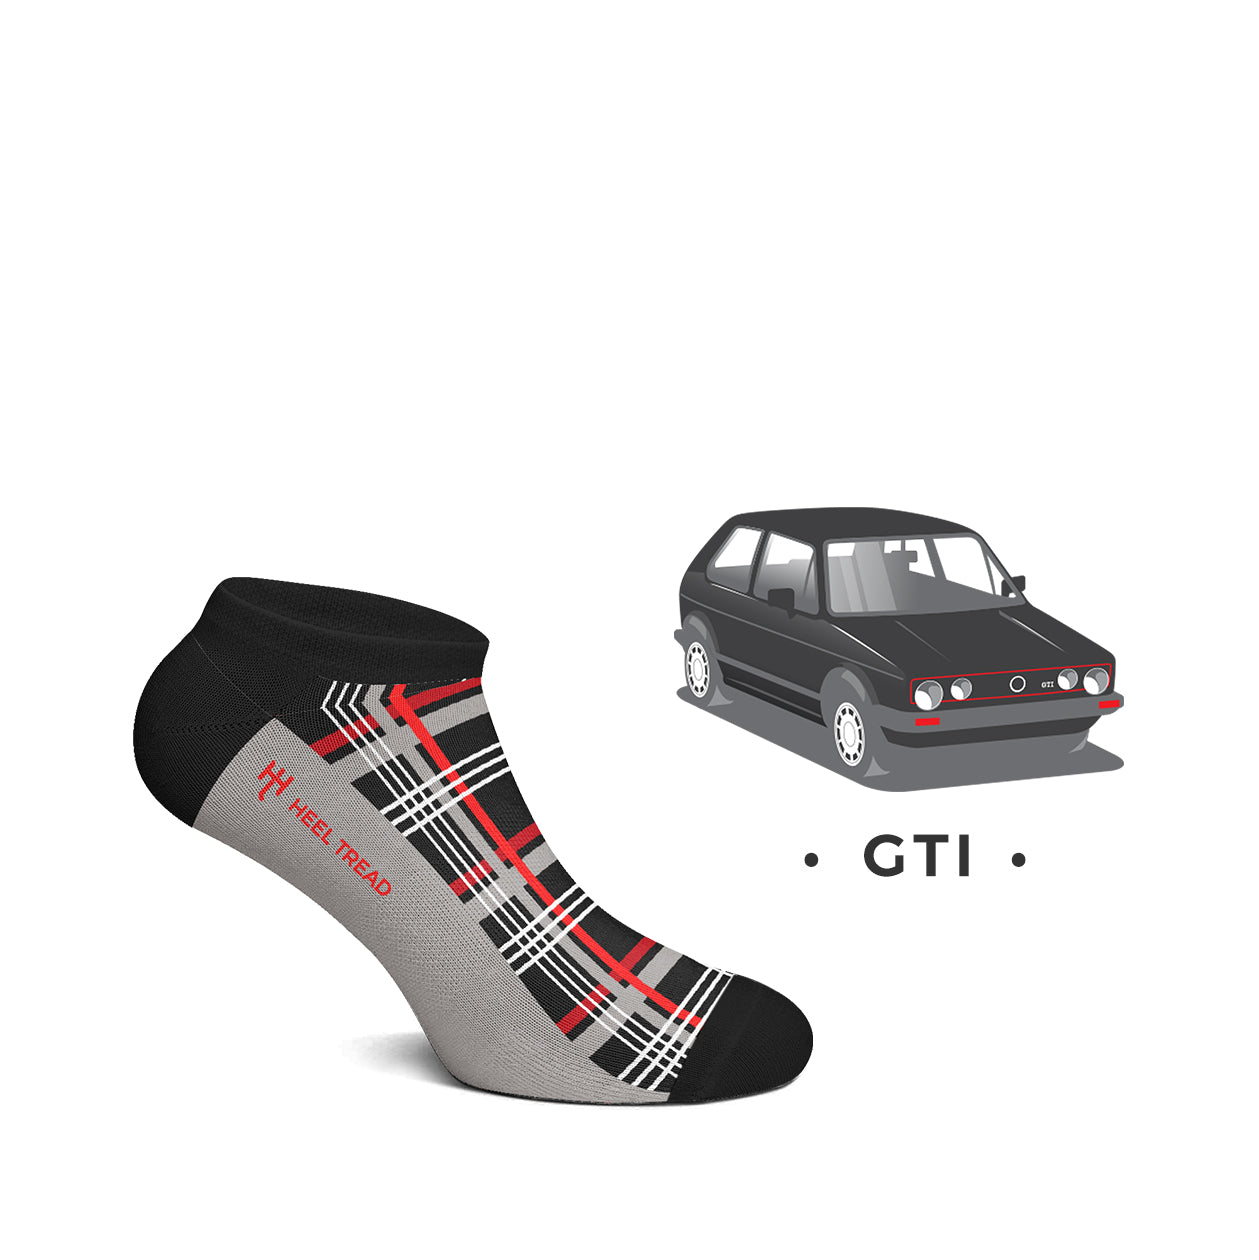 GTI Low Socks